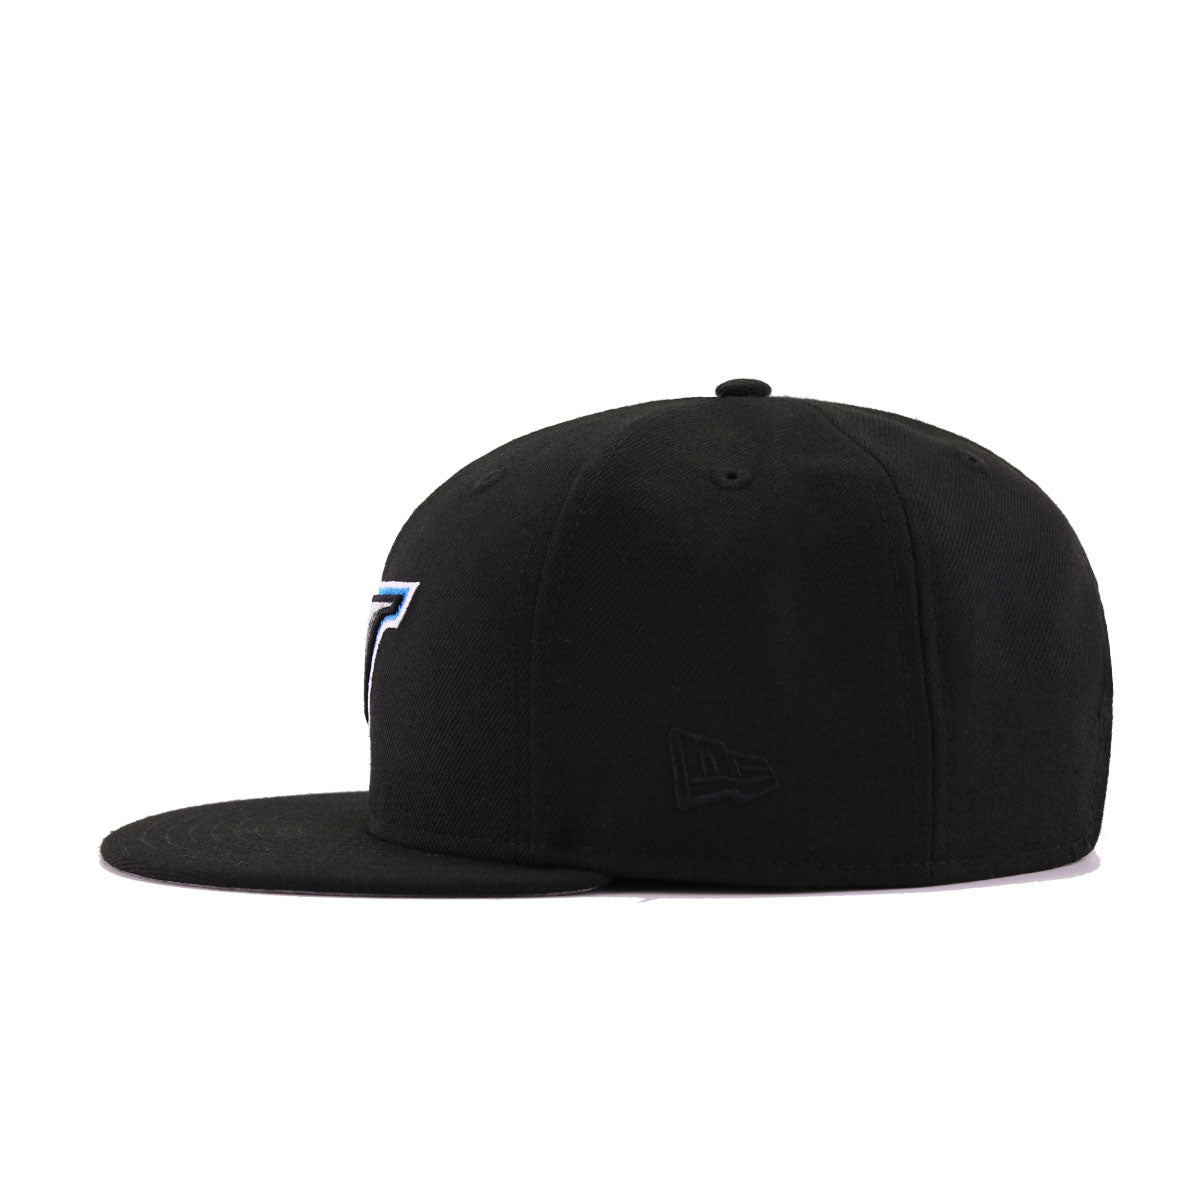 Toronto Blue Jays Black Cerulean Blue Cooperstown New Era 9Fifty Snapback